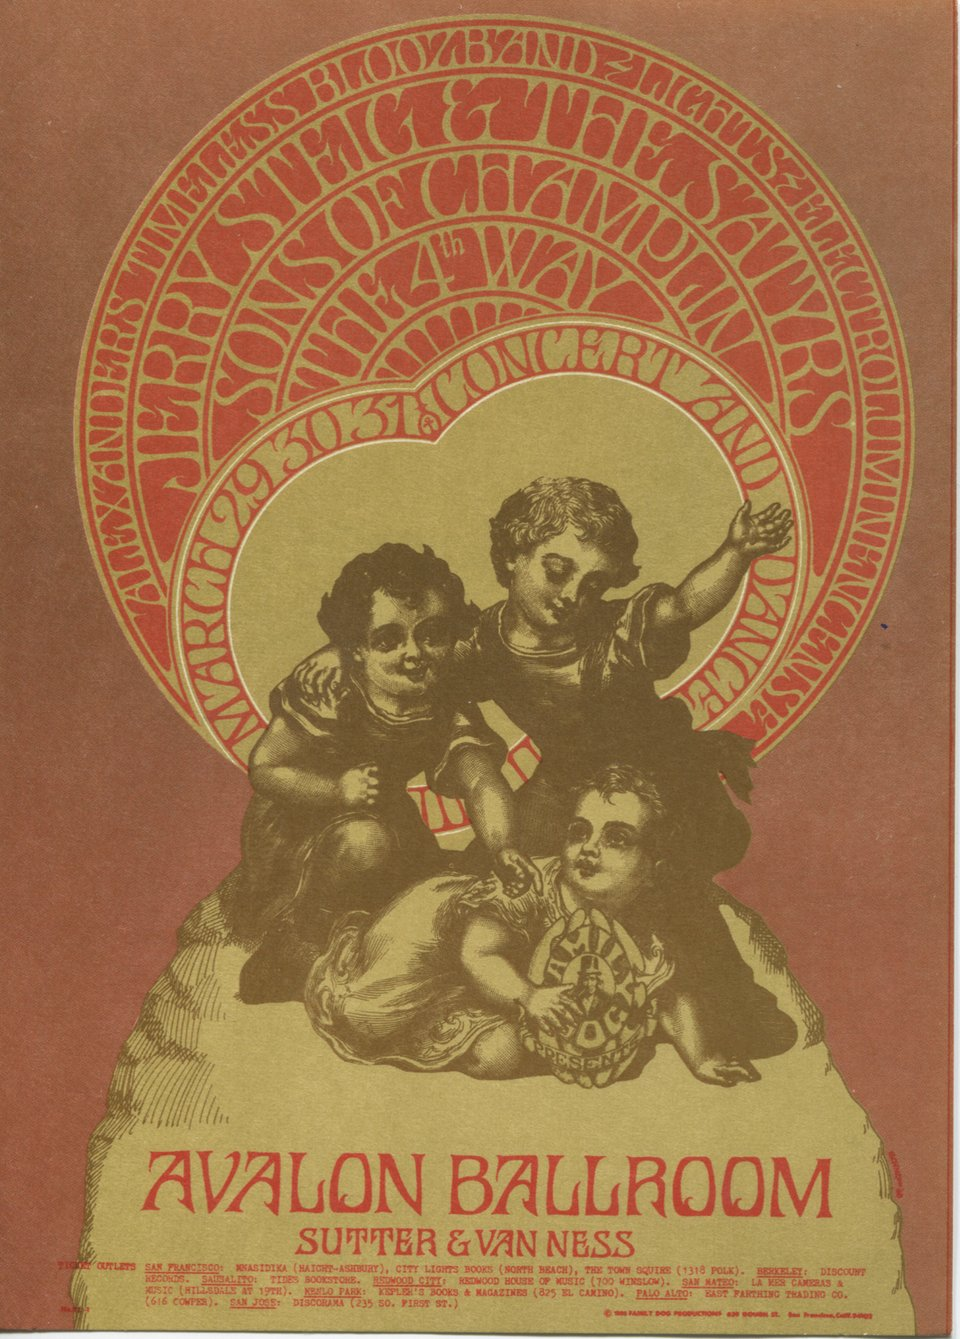 Jeremy Steig and the Satyrs, Sons of Champlin, Fourth Way – Vintage poster – Bob Schnepf – 1968